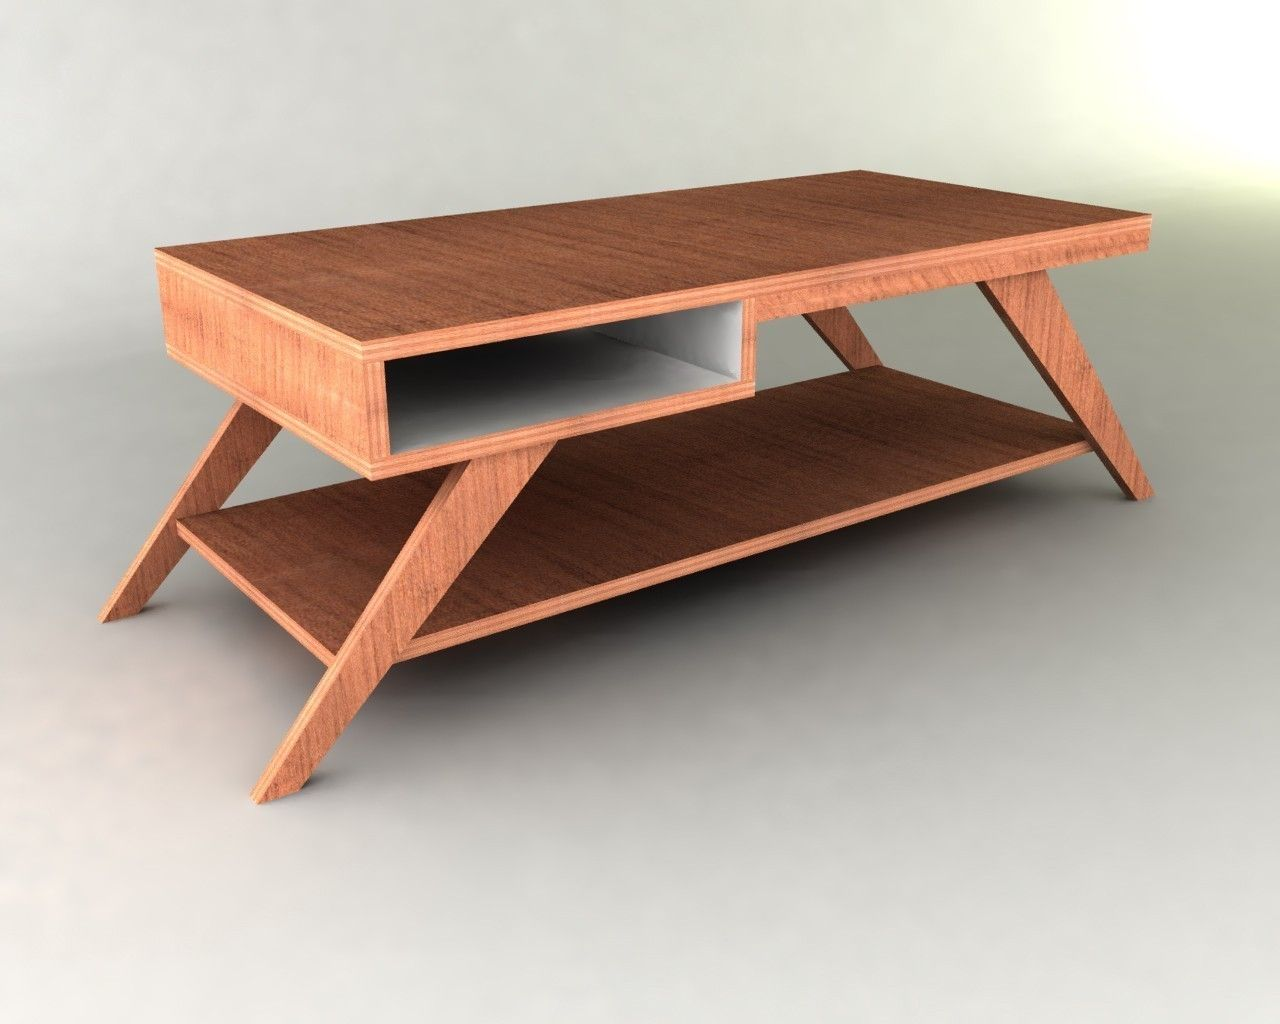 1950S Style Furniture | Retro Modern Eames Style Coffee Table Furniture Plan